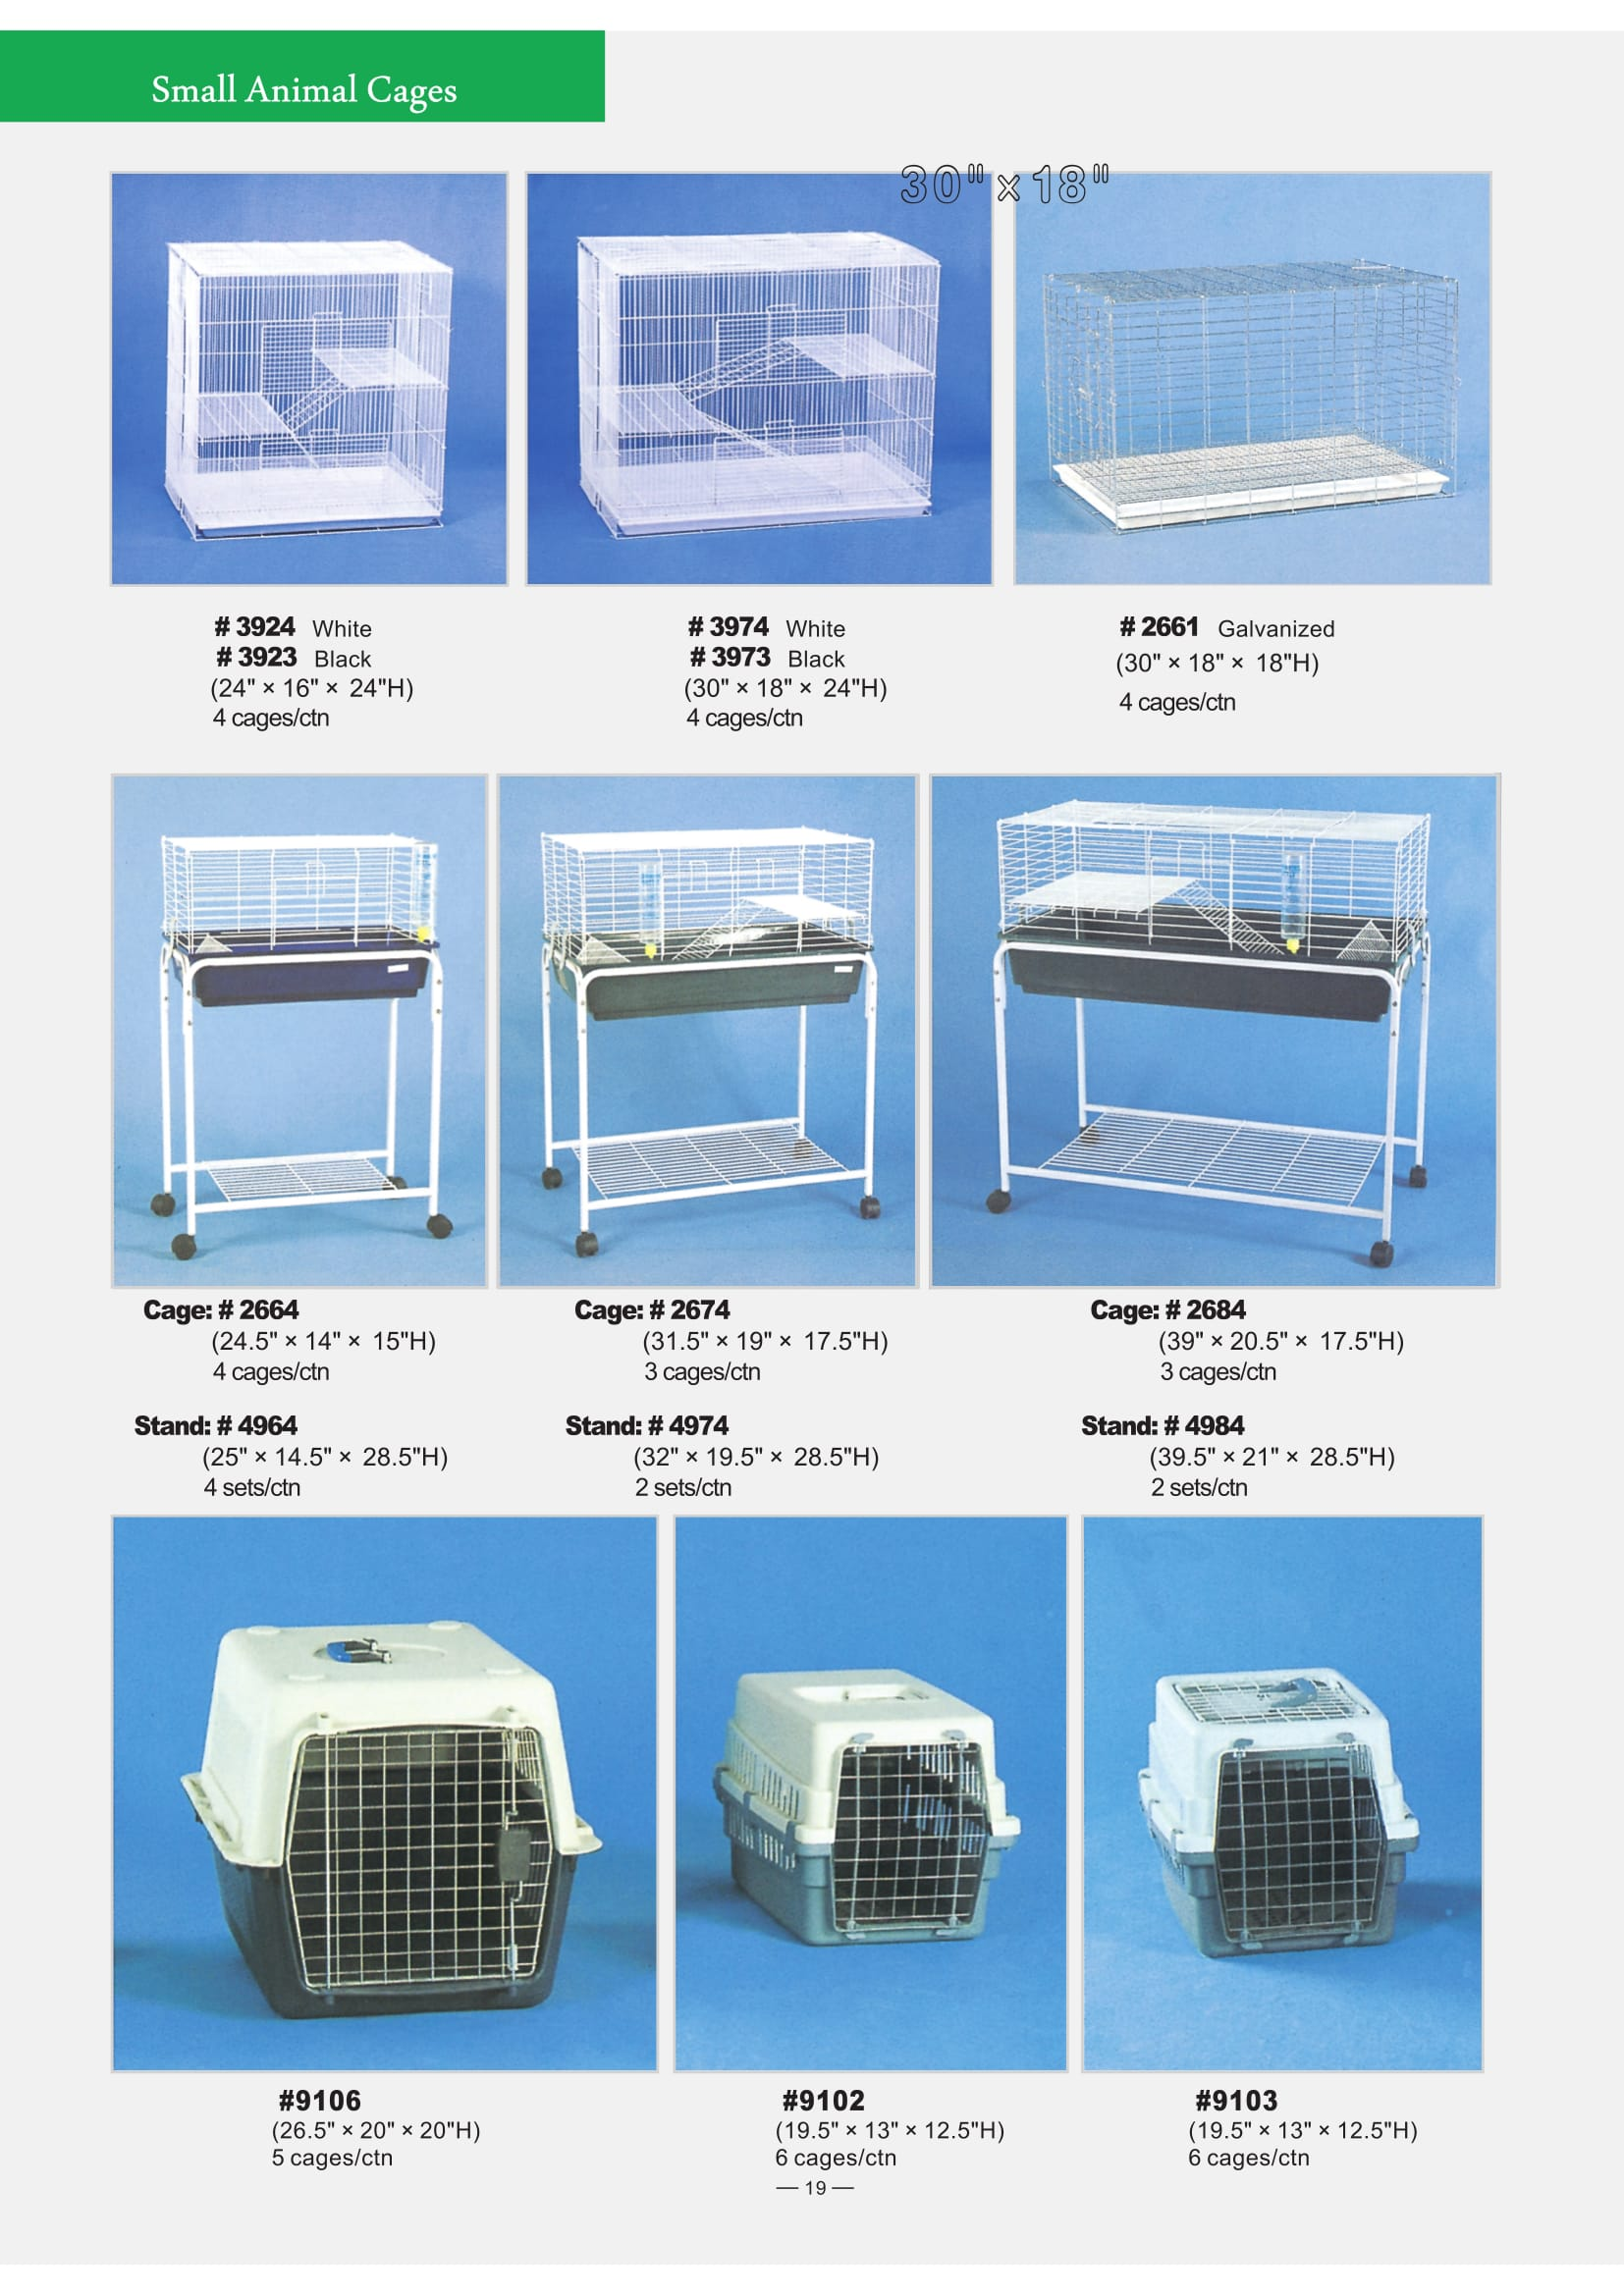 7. Small Animals Cages-3